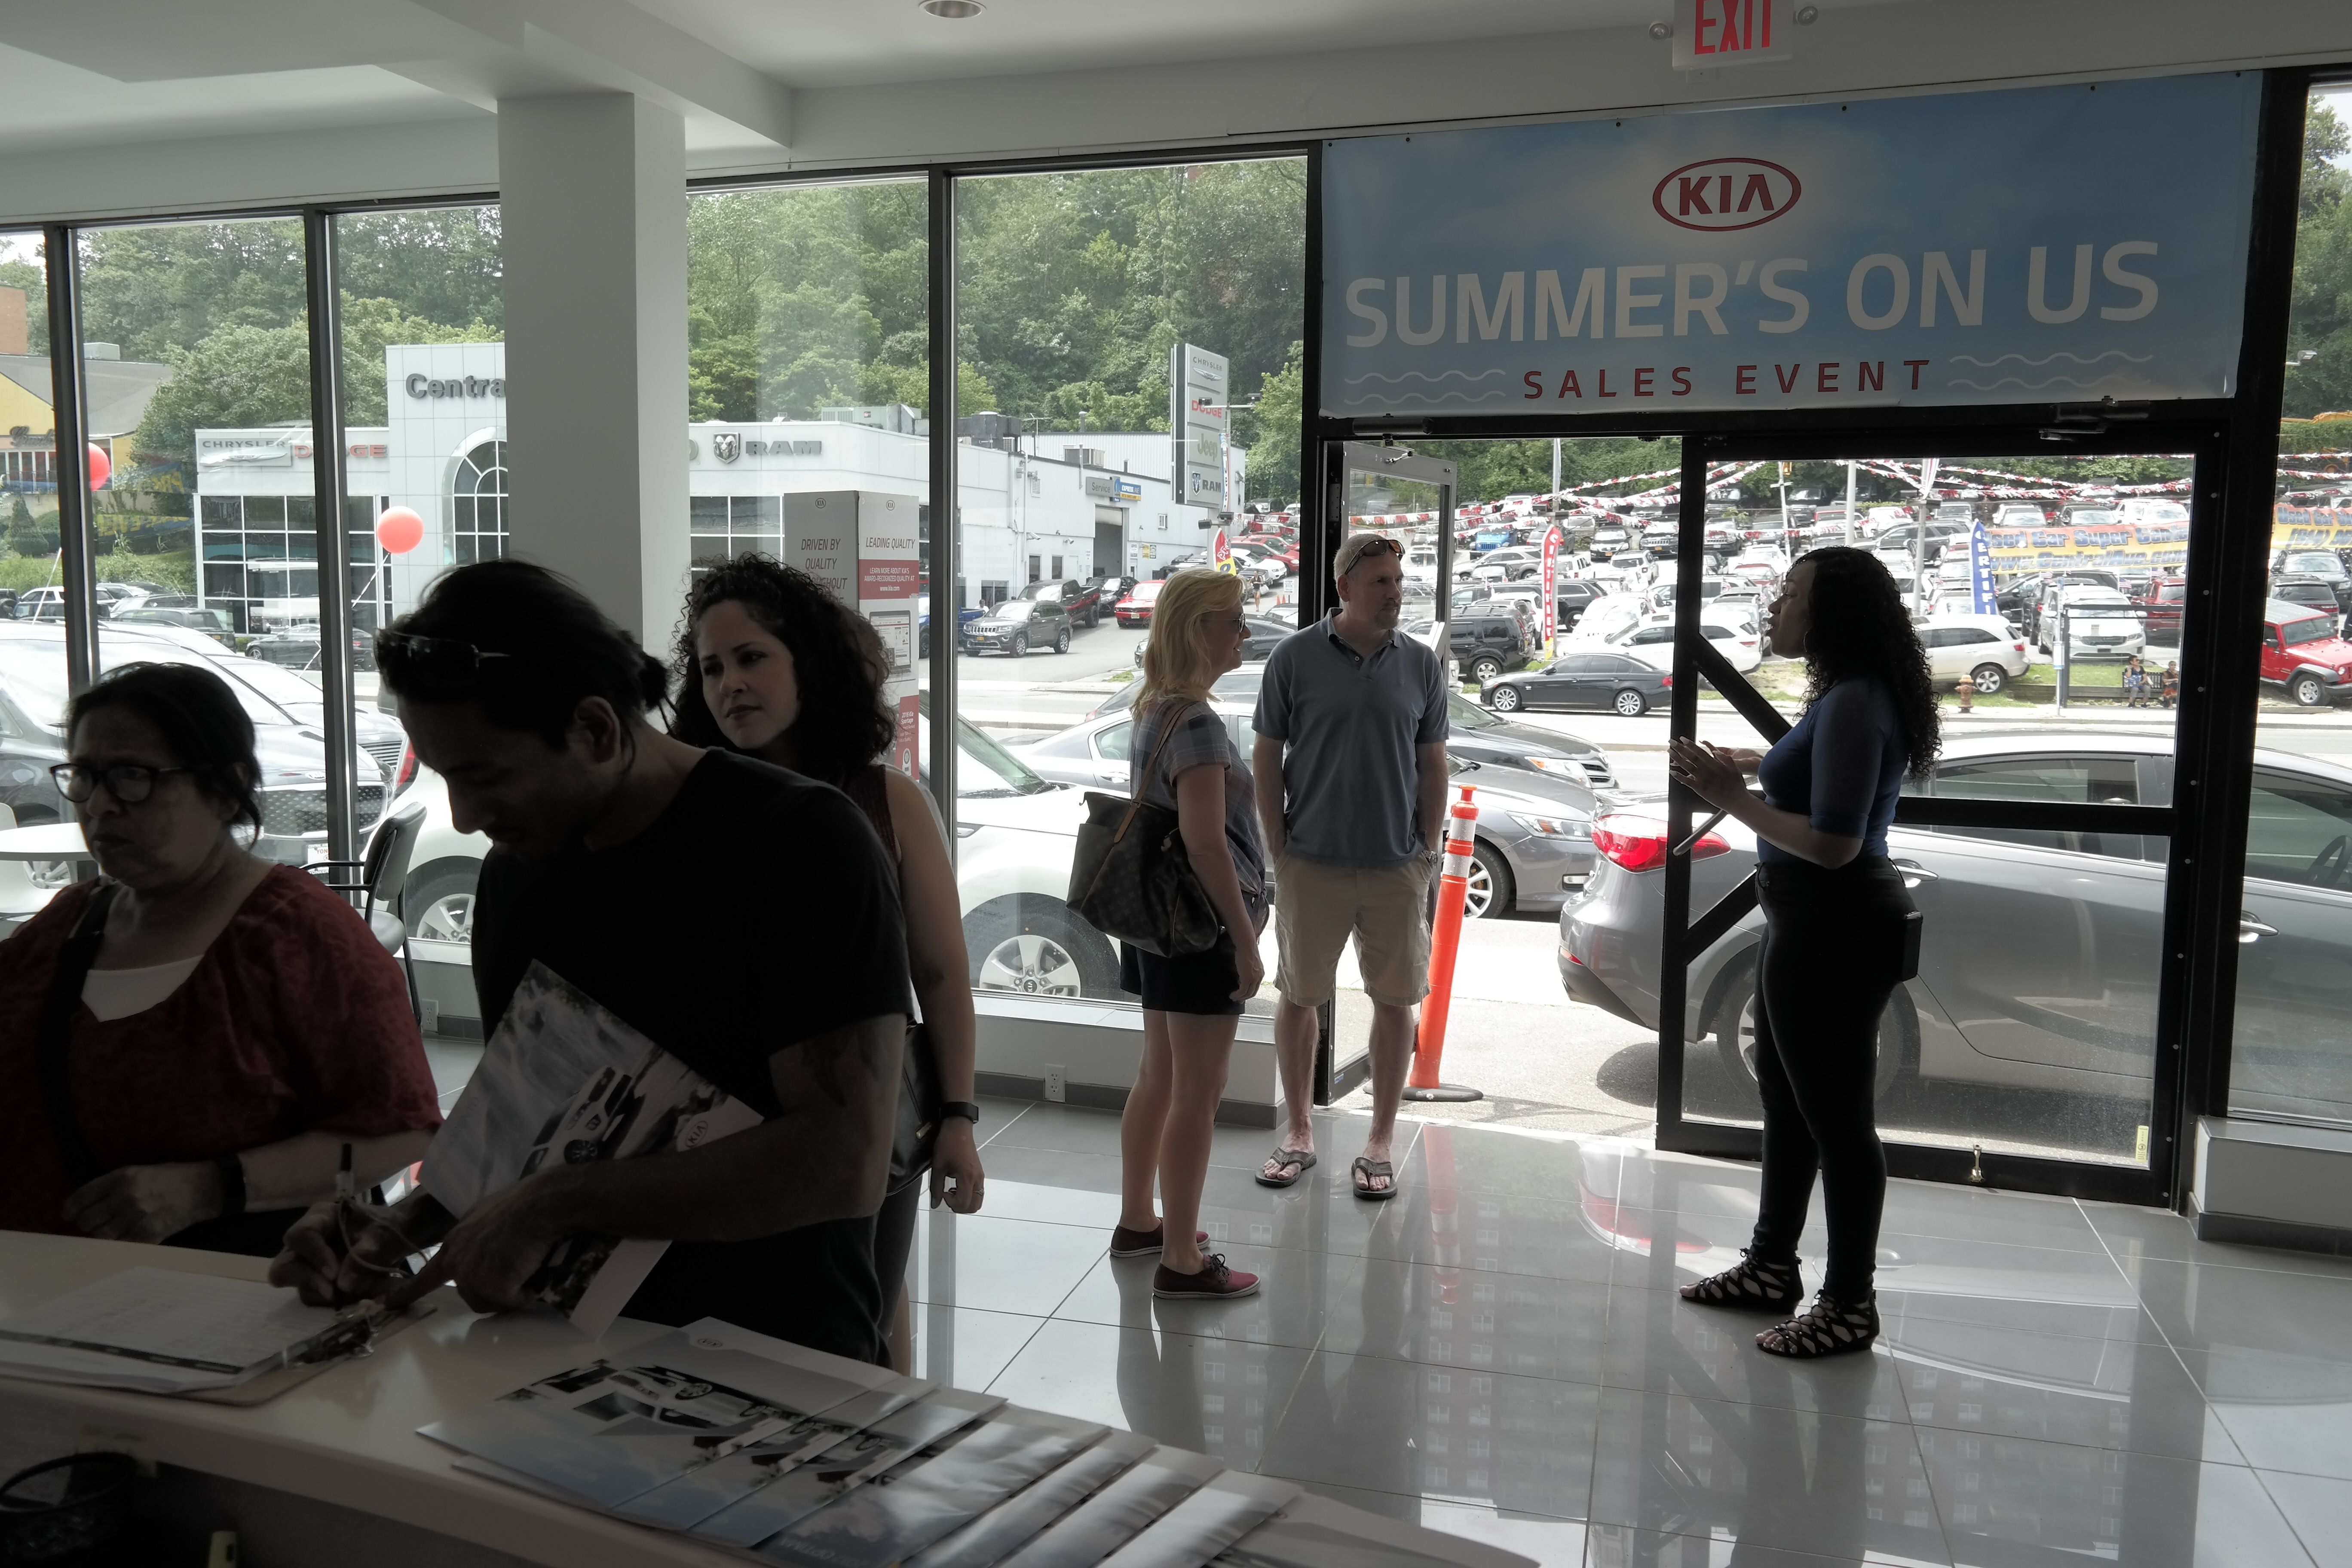 e in to Yonkers Kia and see what we have in store for our SUMMER